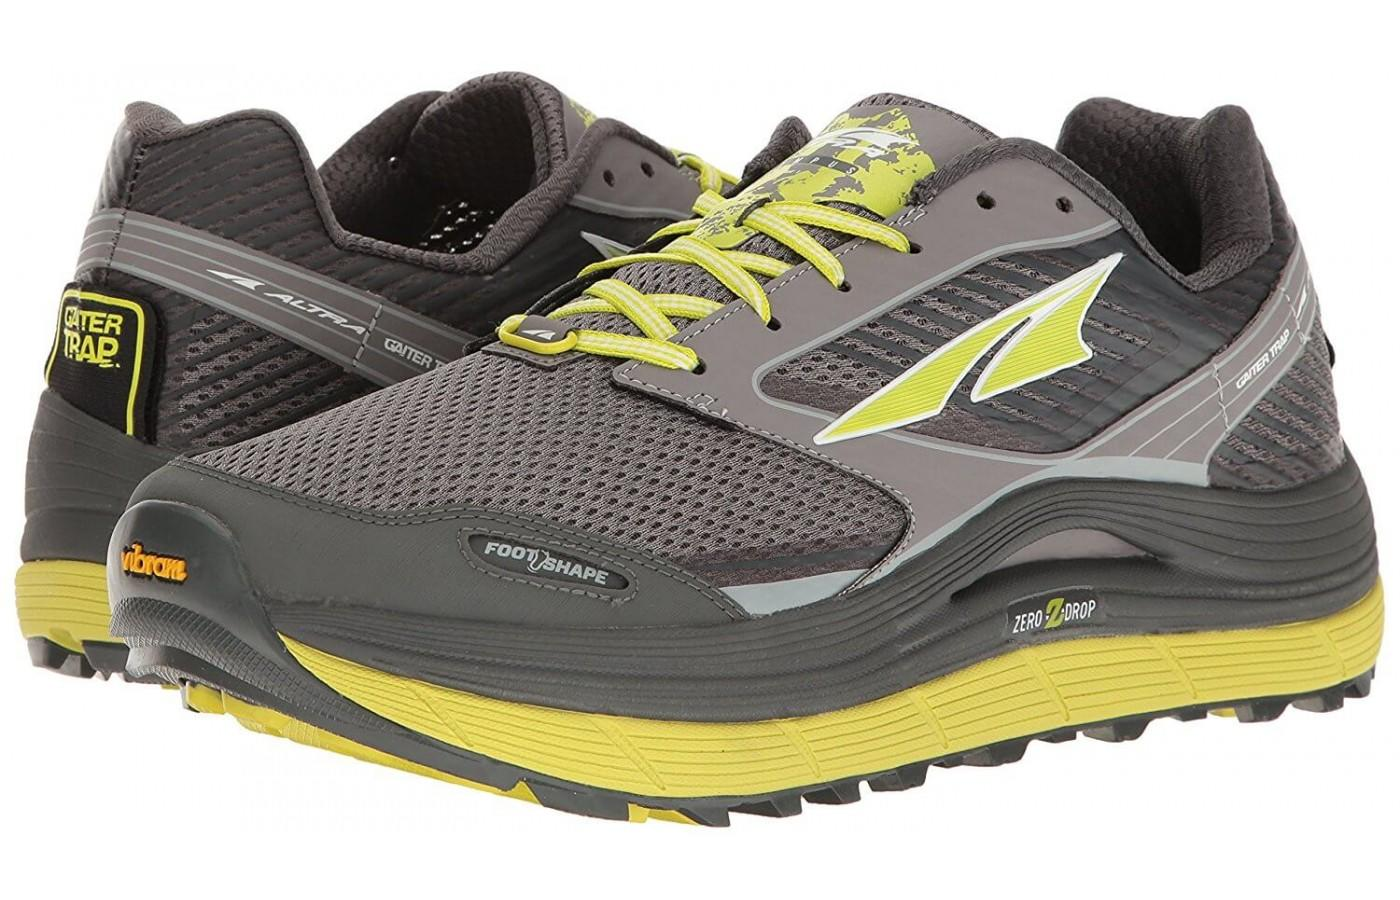 Altra Olympus 2.5 in yellow and grey colorway for men